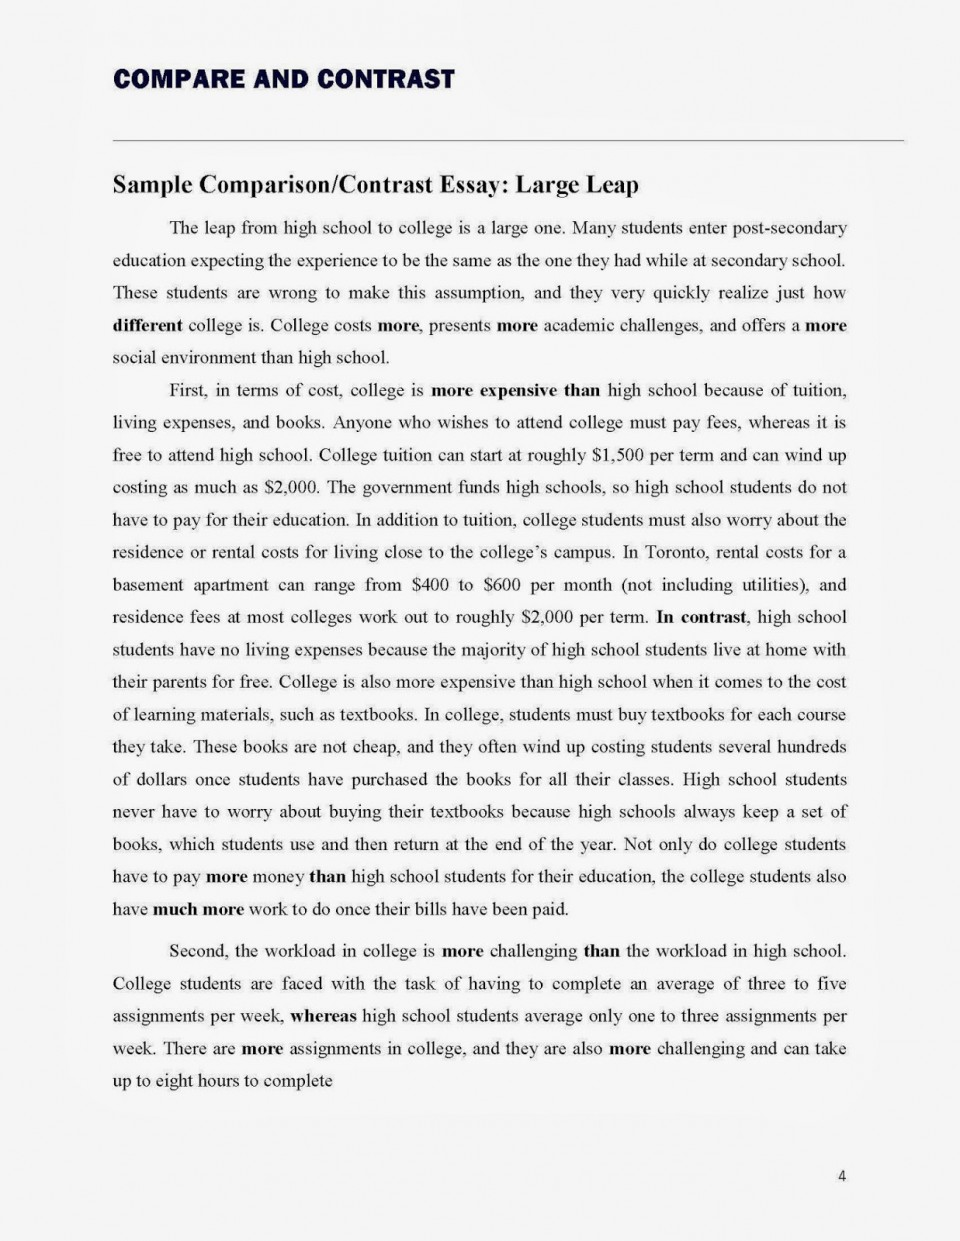 011 Good Compare And Contrast Essay Compare20and20contrast20essay Page 4 Unbelievable The Great Gatsby Tom Examples Middle School Movie Book 960